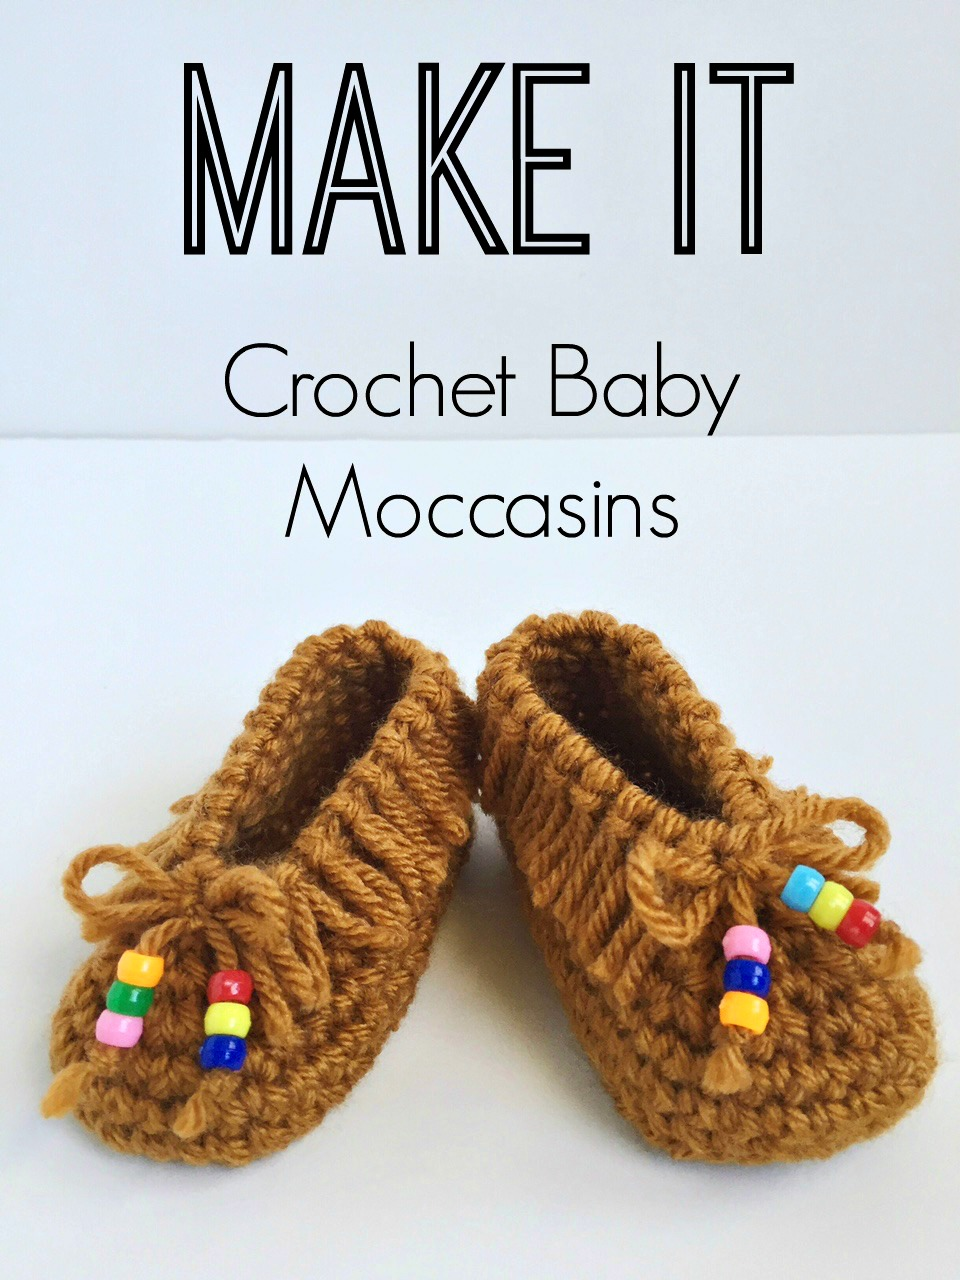 Crochet Baby Moccasins